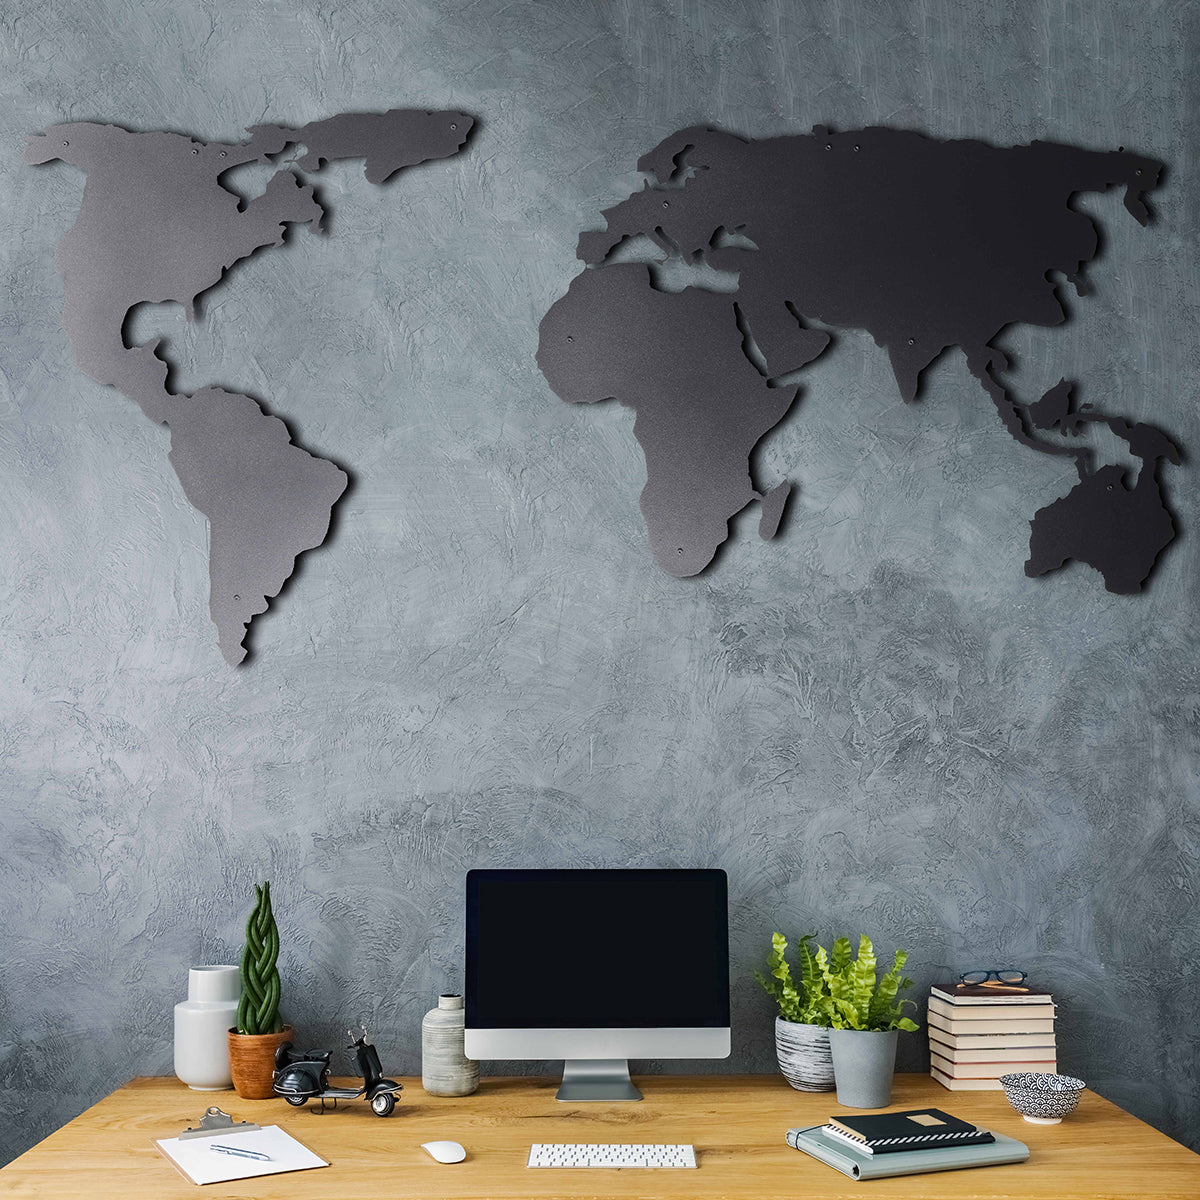 world map wall art decor for home or office